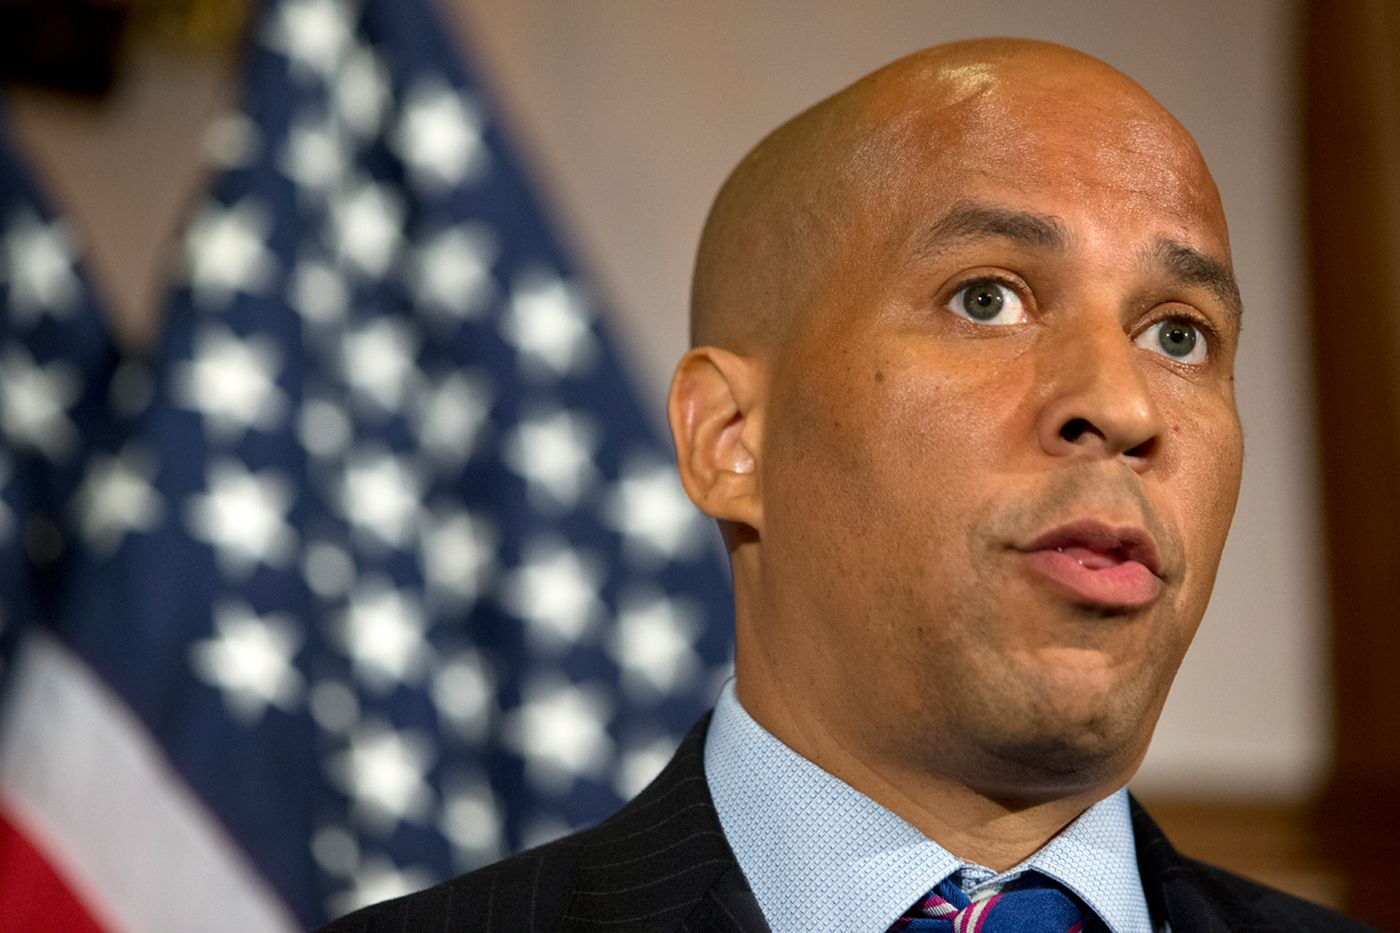 Booker breaks Senate precedent, drawing fire on Jeff Sessions nomination